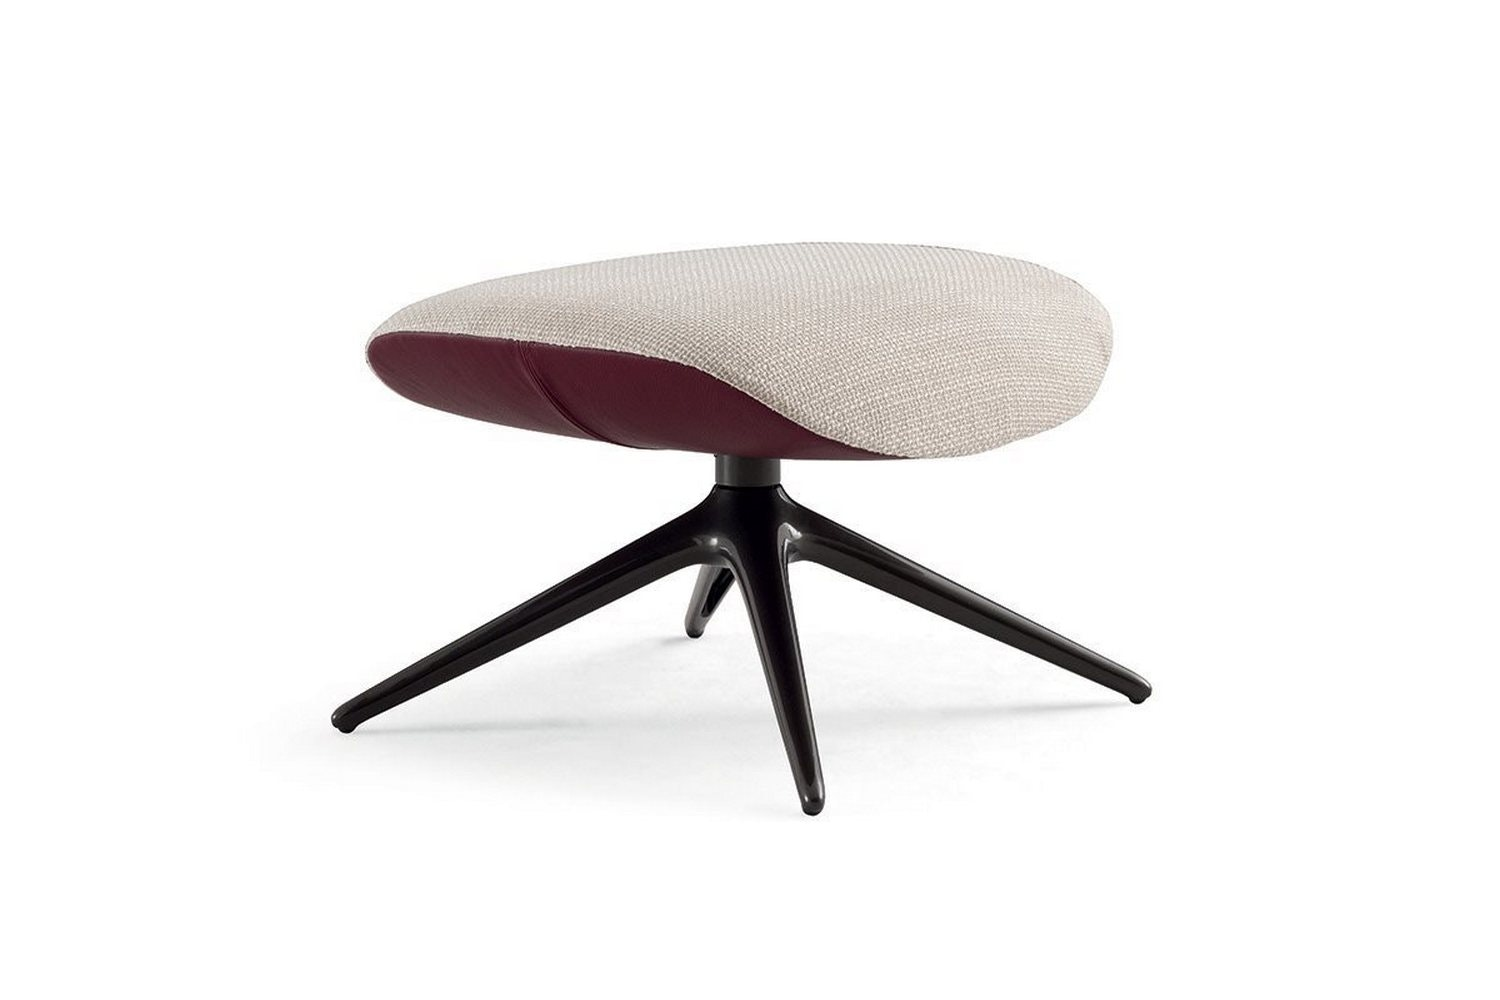 Mad Ottoman by Marcel Wanders for Poliform